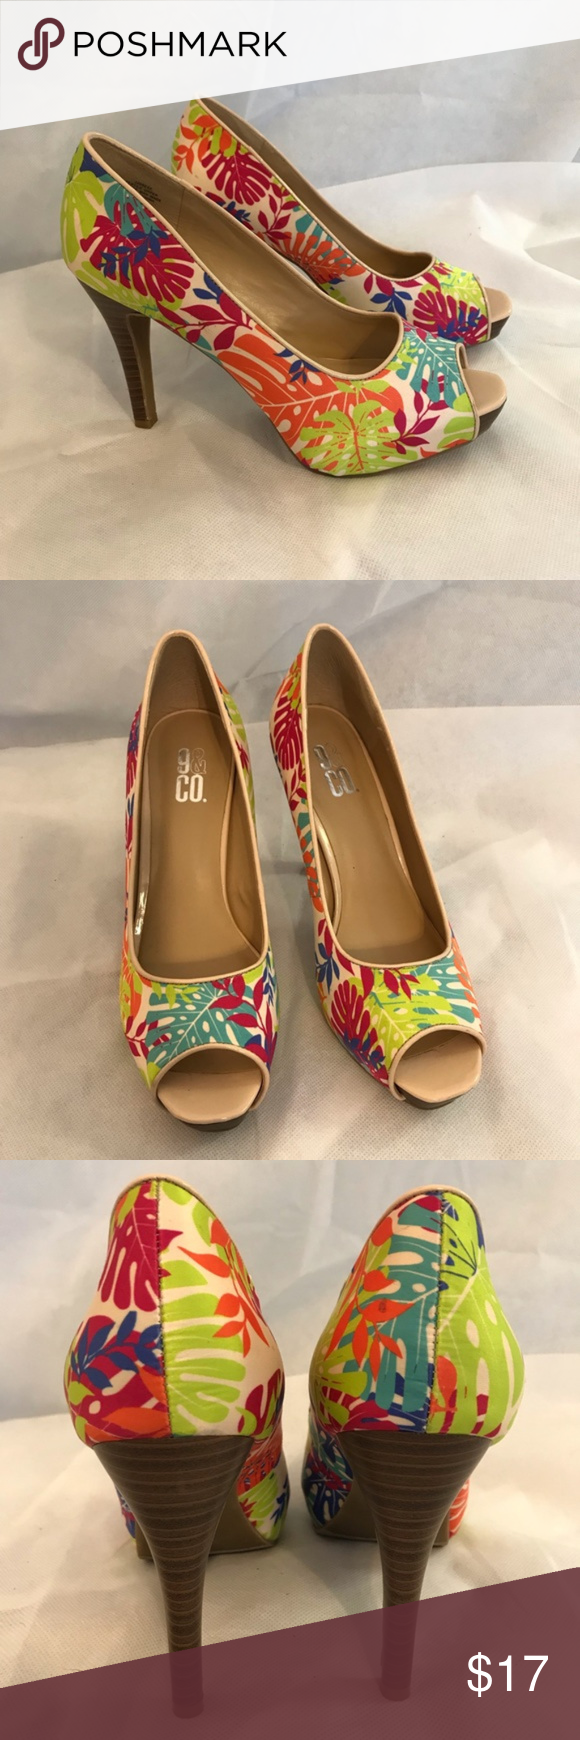 "9&Co High Heels Shoe Tropical Leaf Hawaiian Summer 9&Co High Heels Shoe Tropical Leaf Hawaiian Summer Multi Color  Size 9.5 - 5"" heel JJ Brese  Textile Upper, Man Made balance Very clean, almost new #1196 9&Co Shoes Heels"